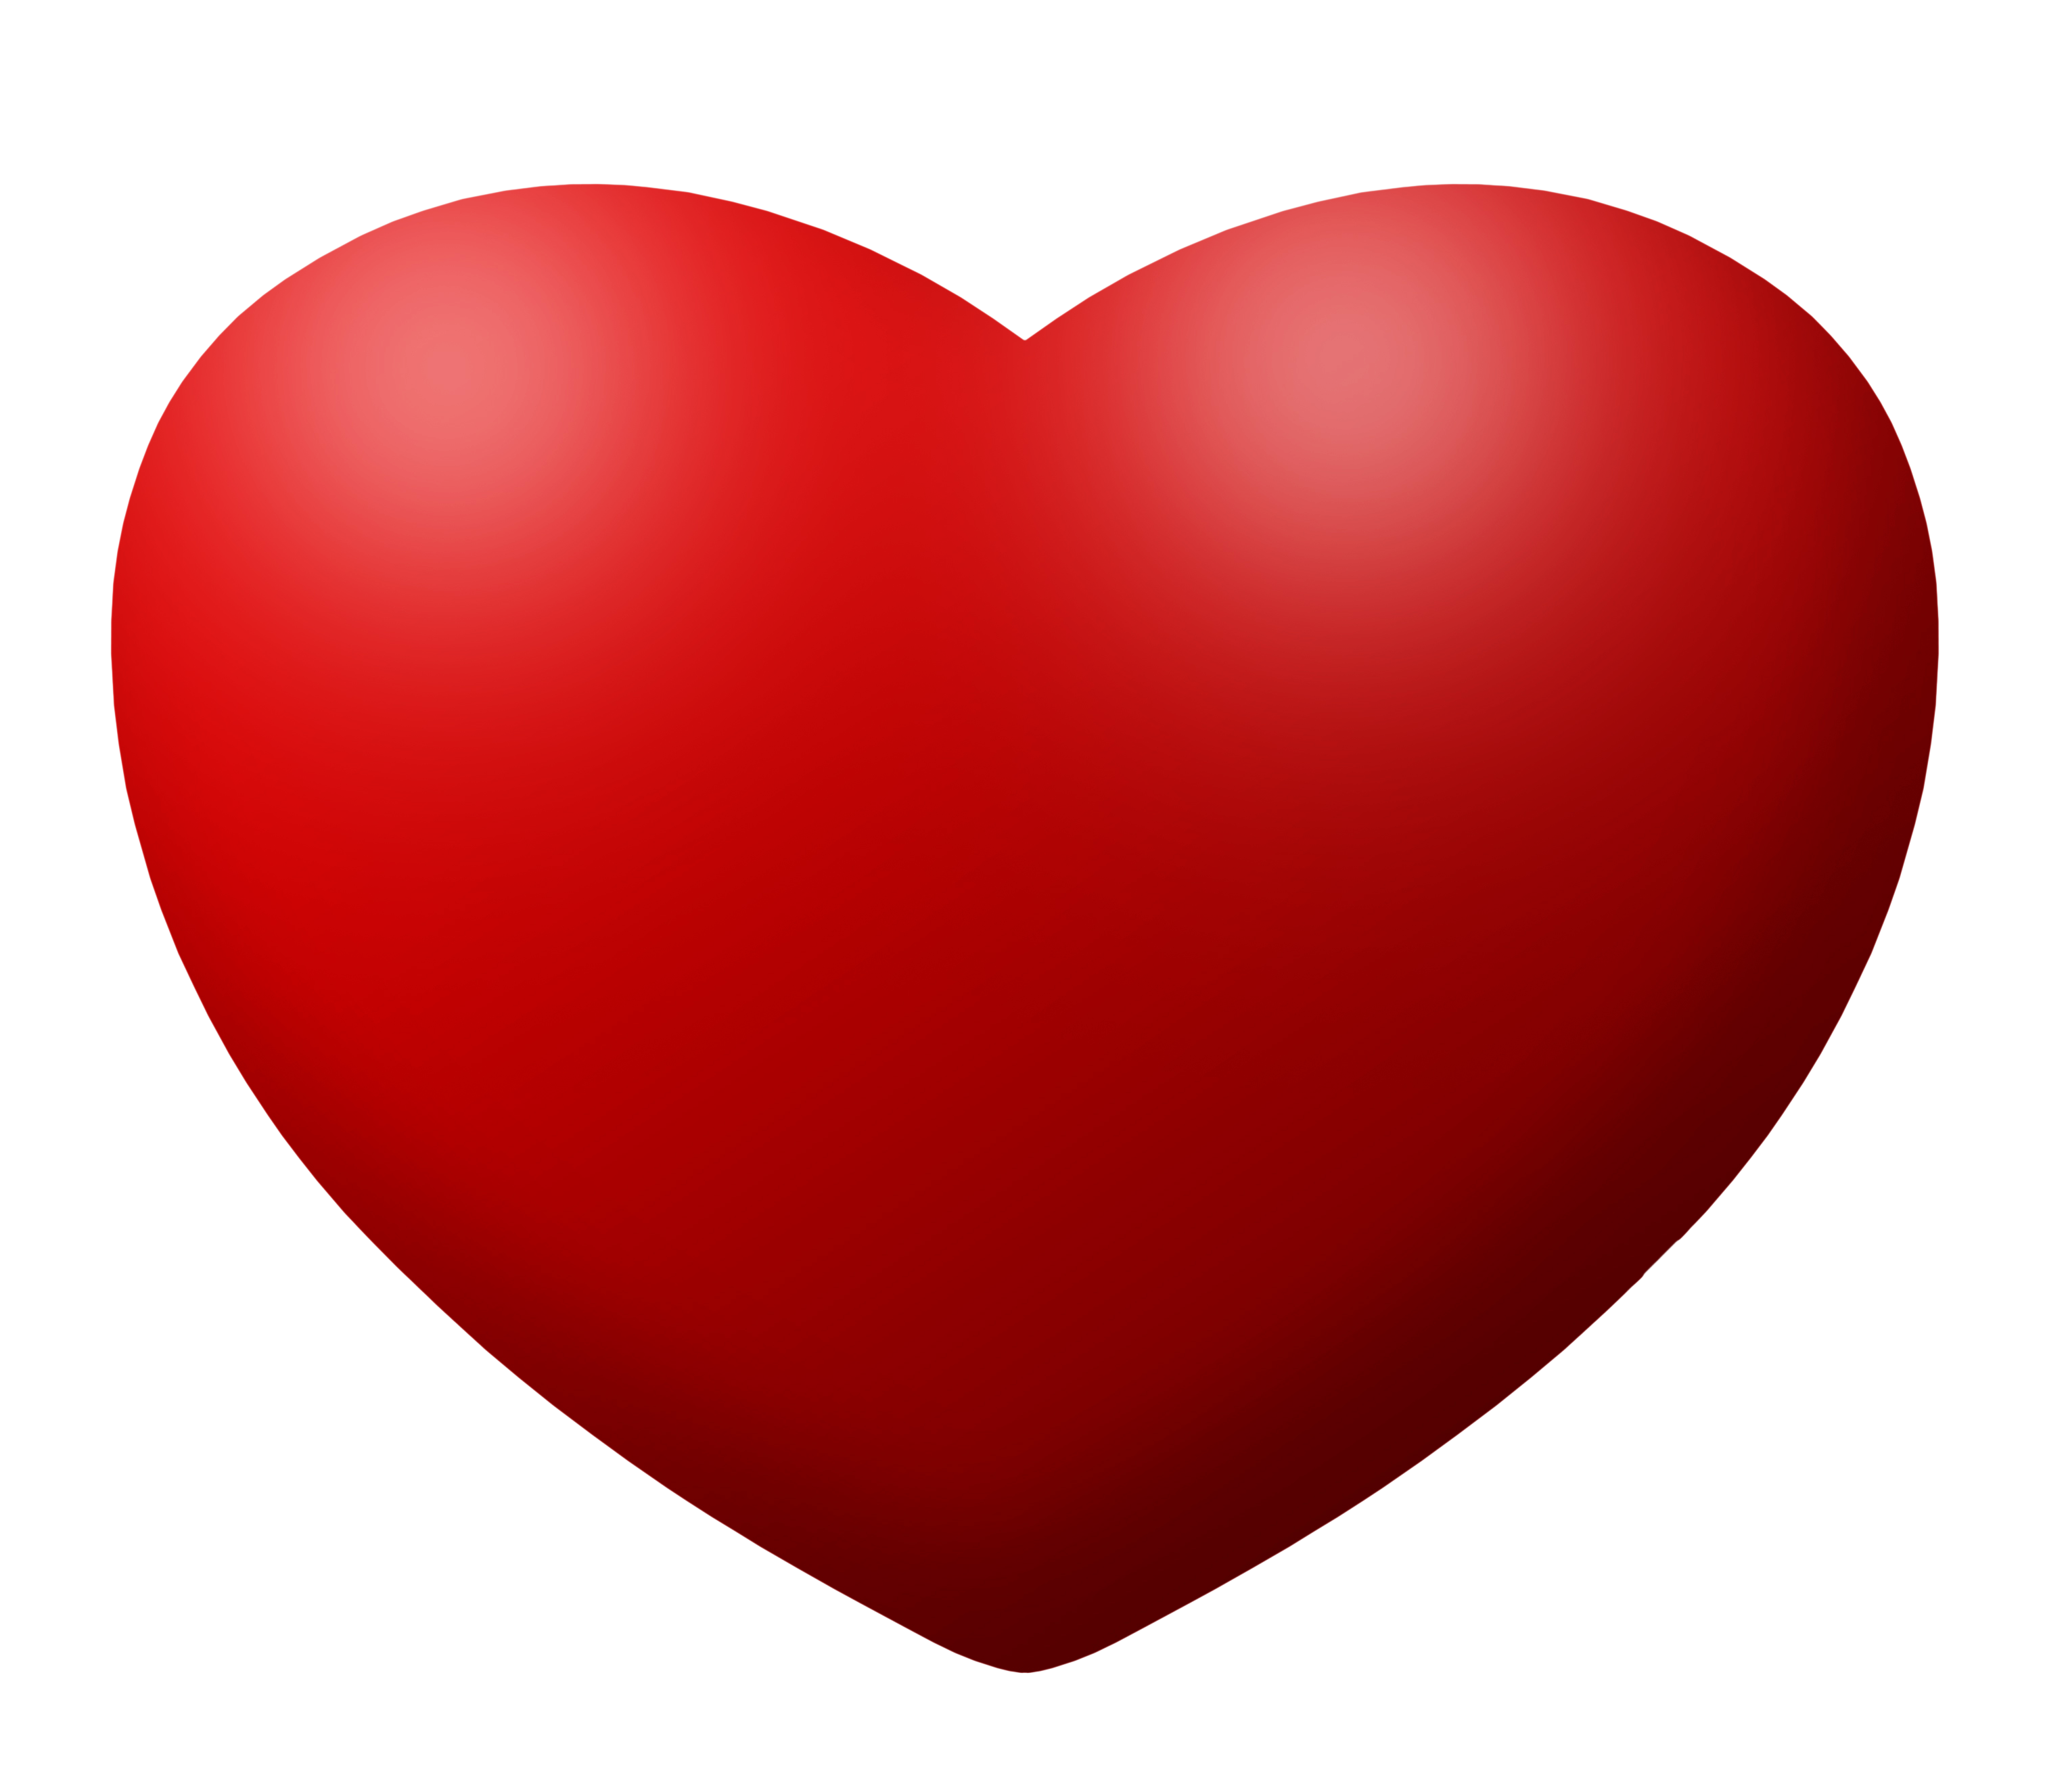 Heart PNG image, free download - Heart PNG - Heart HD PNG